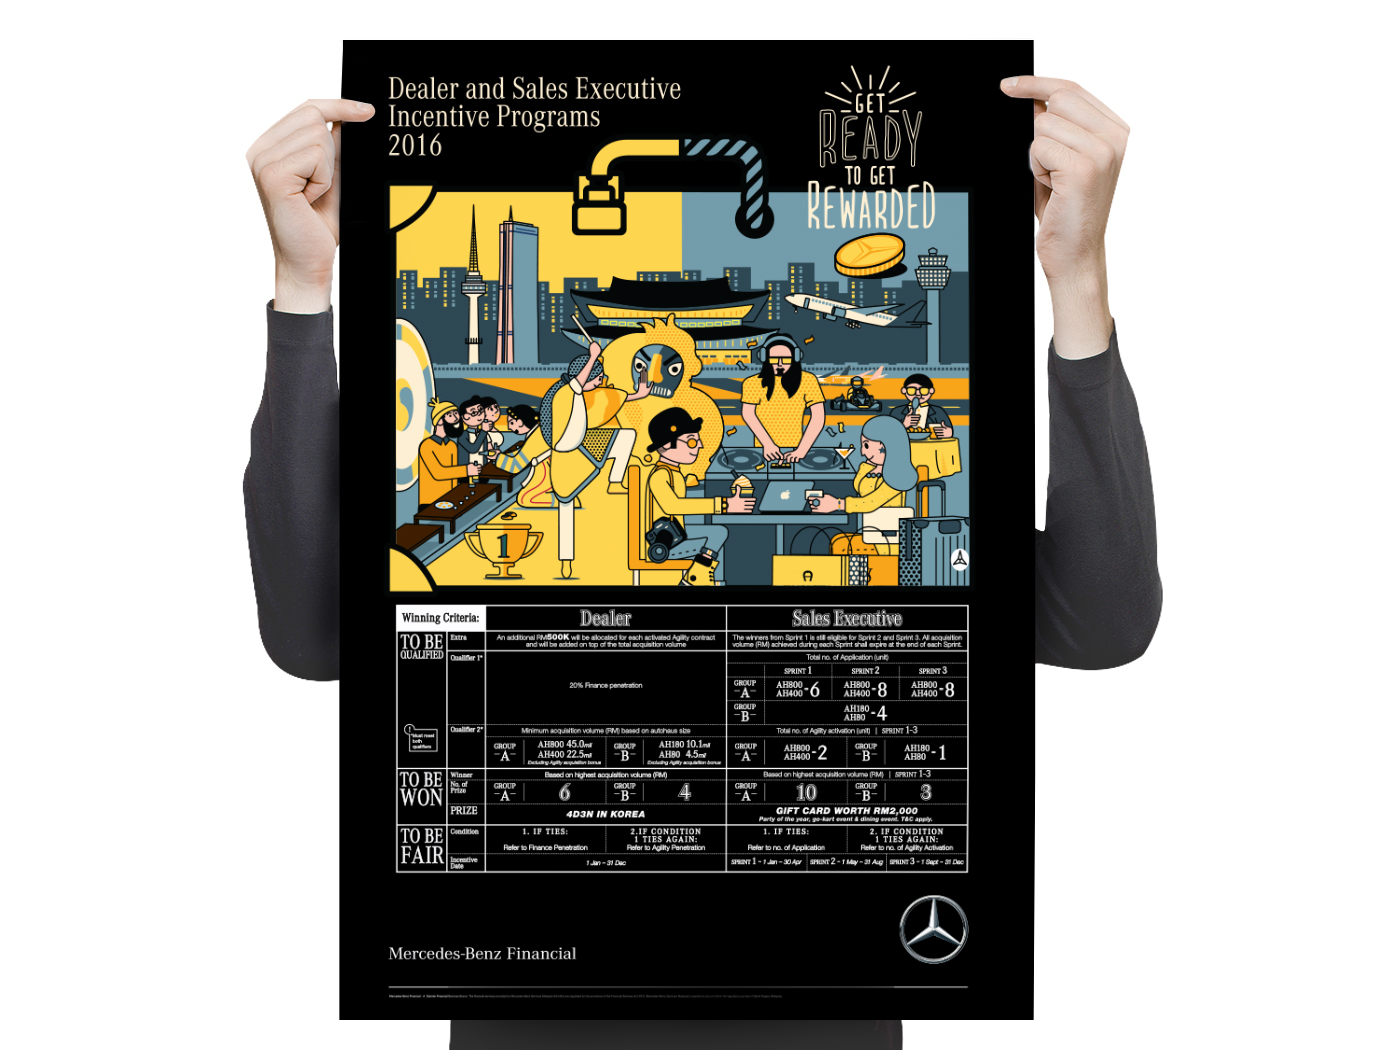 Mercedes-Benz Malaysia Incentive Programs 2016 booklet adapted into a poster held by a talent